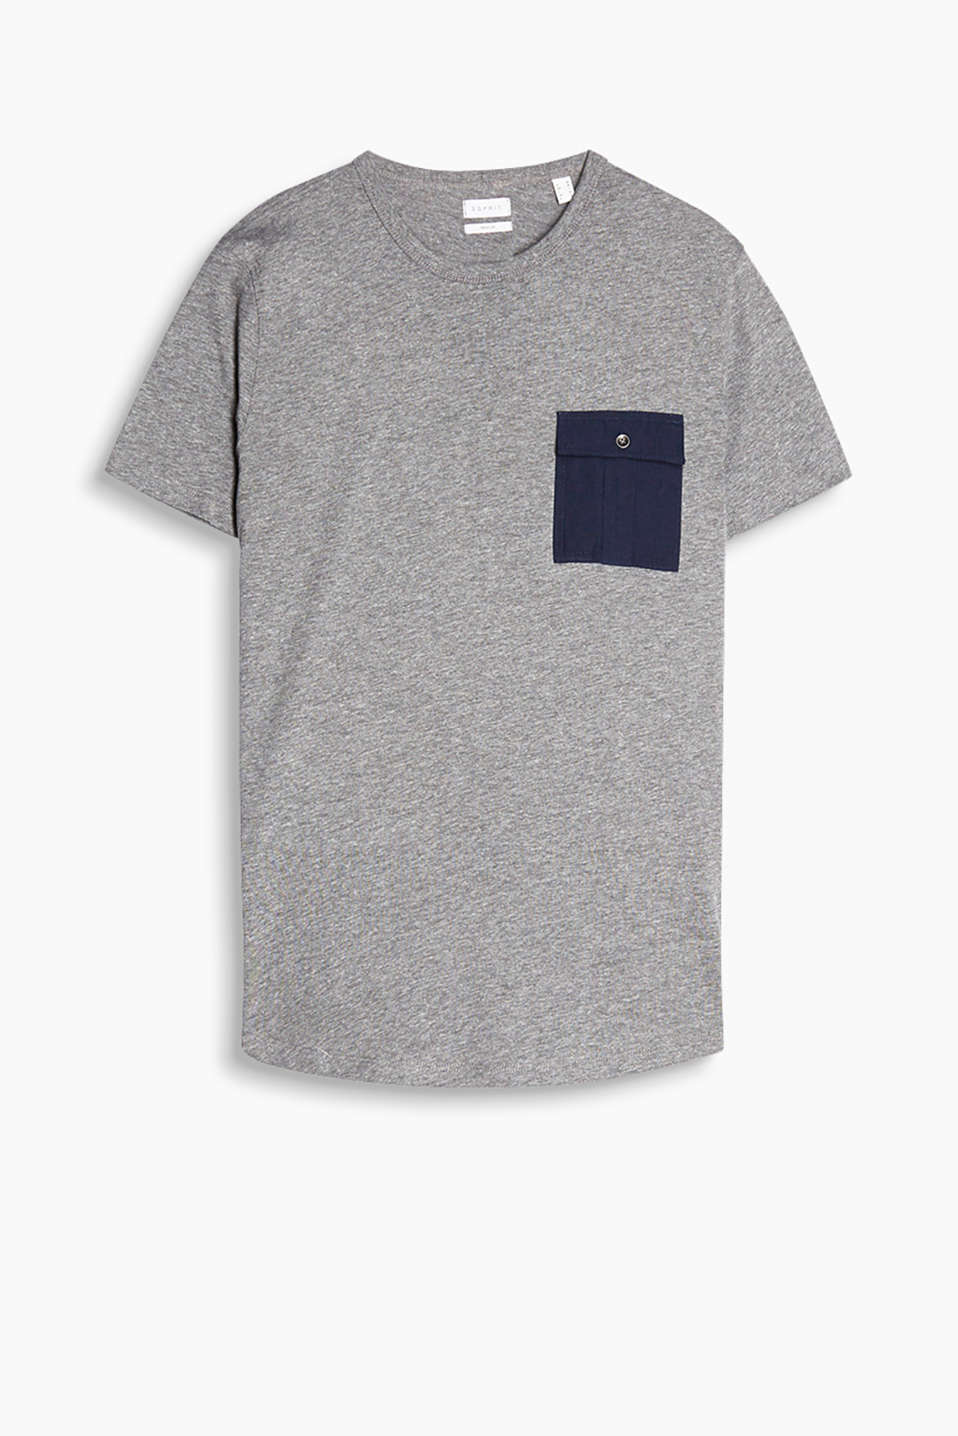 Melange jersey T-shirt with a patch breast pocket